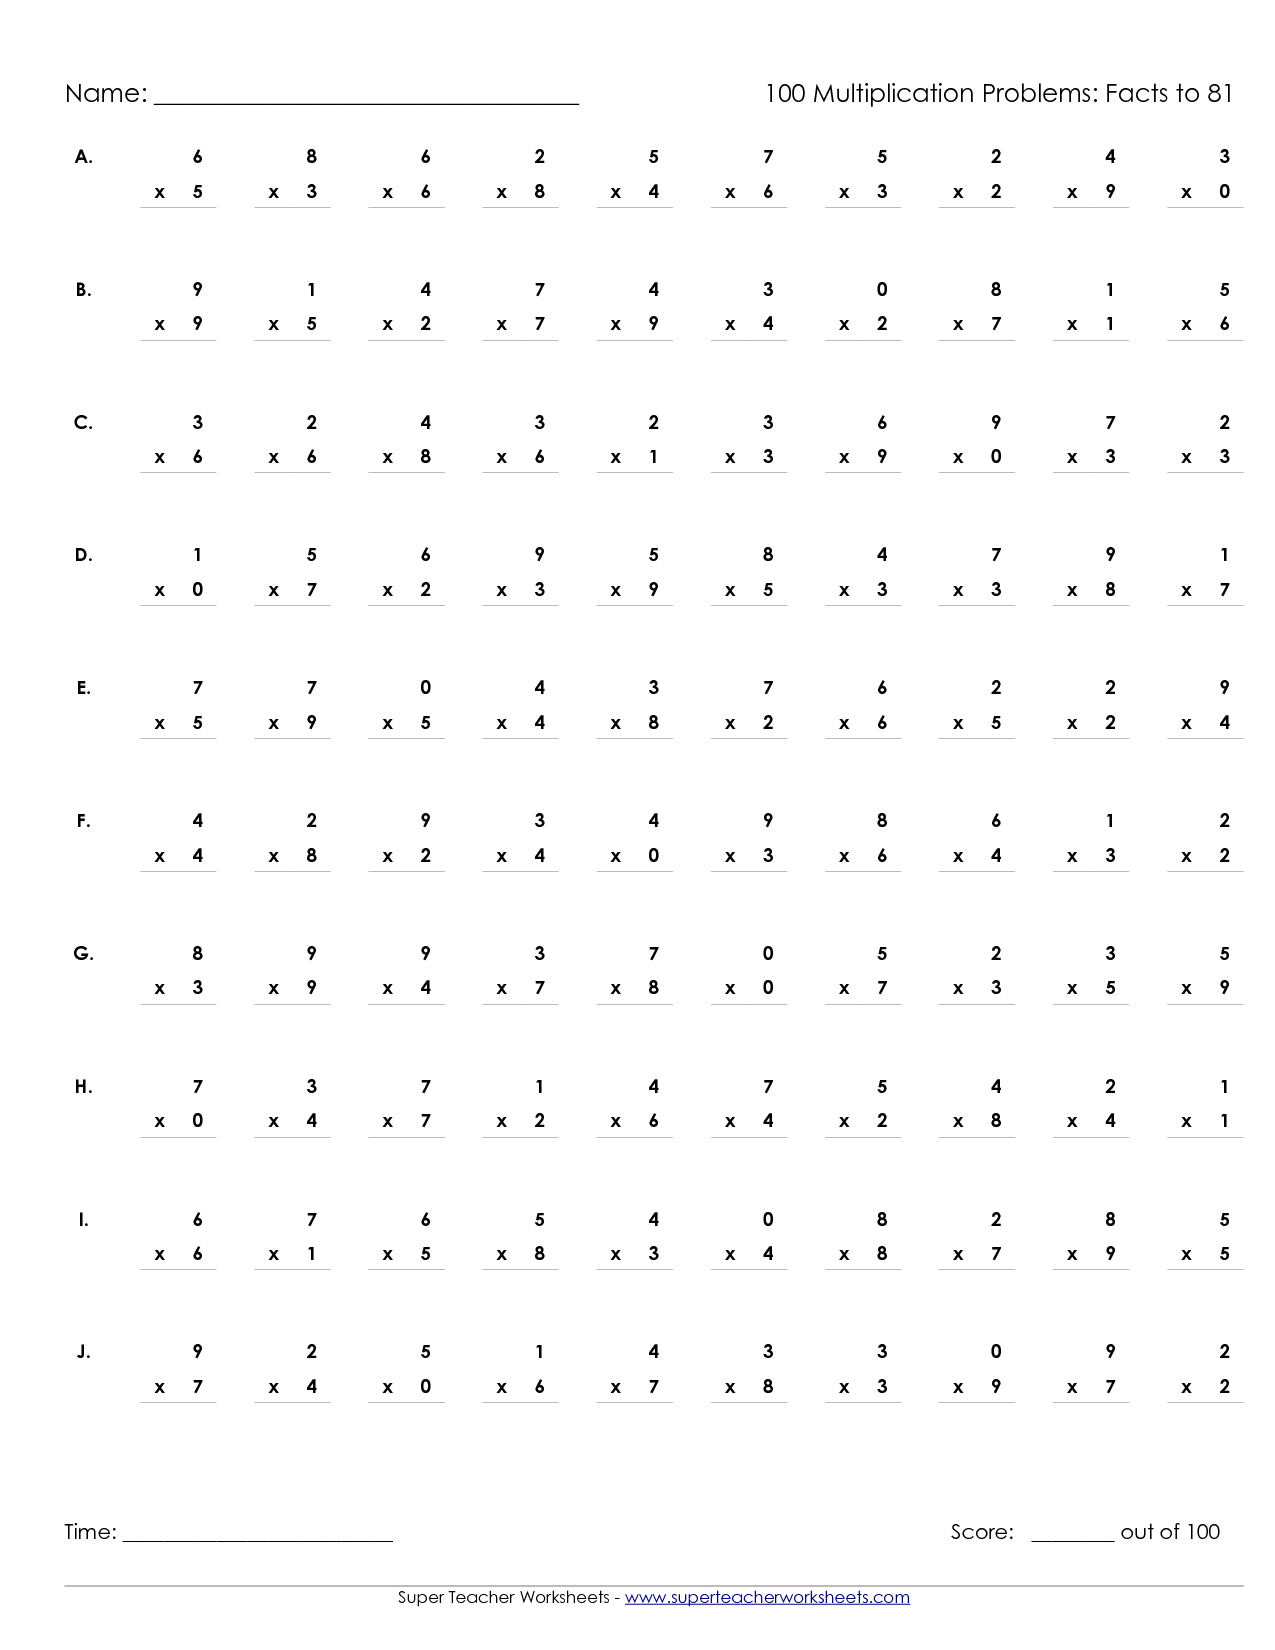 Multiplication Worksheets 5th Grade 100 Problems